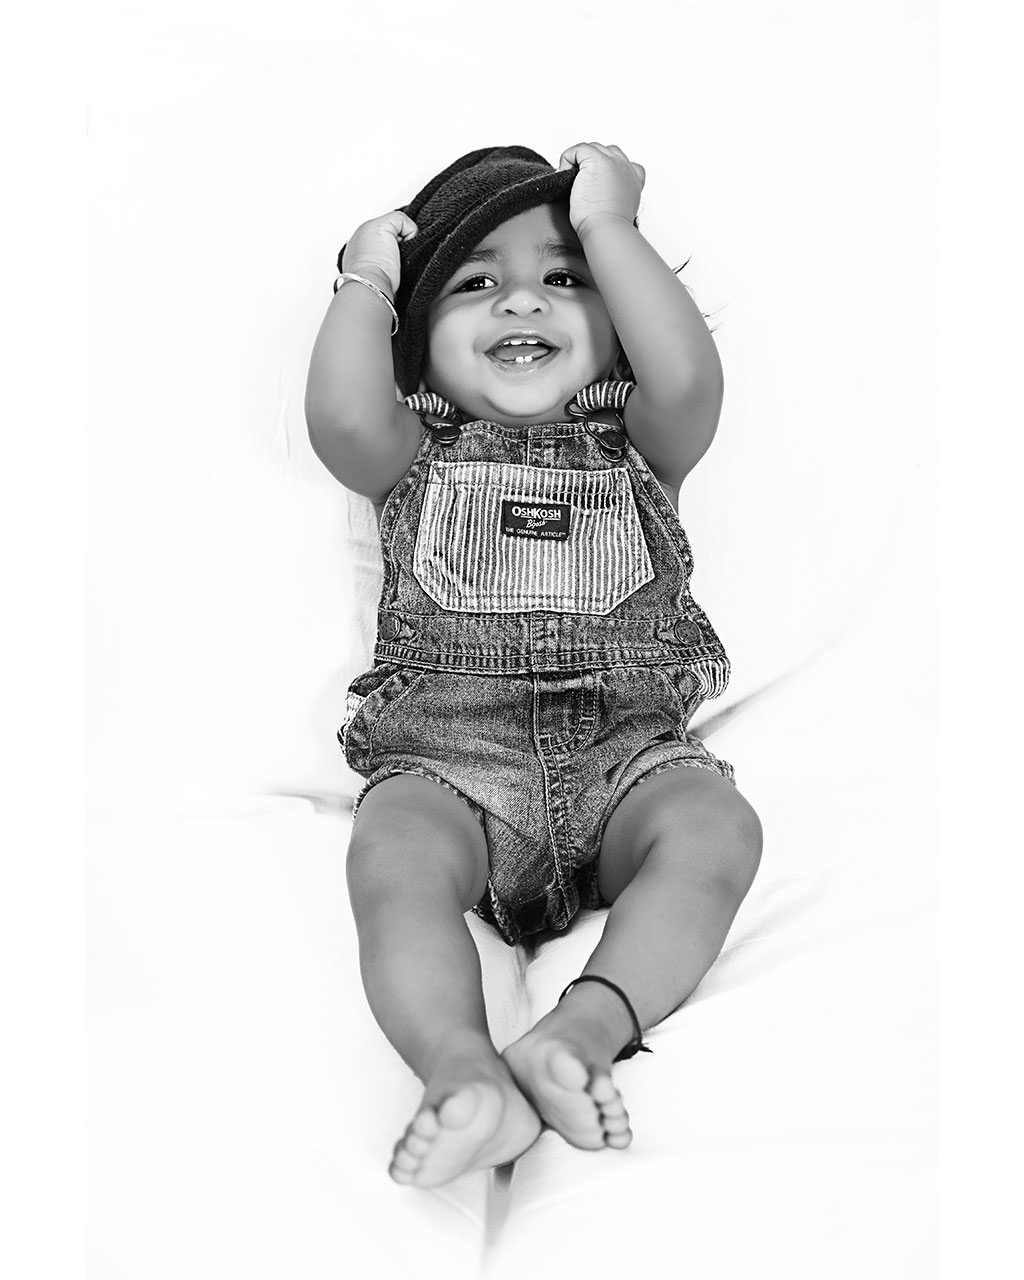 Portrait-of-a indian baby-boy having fun